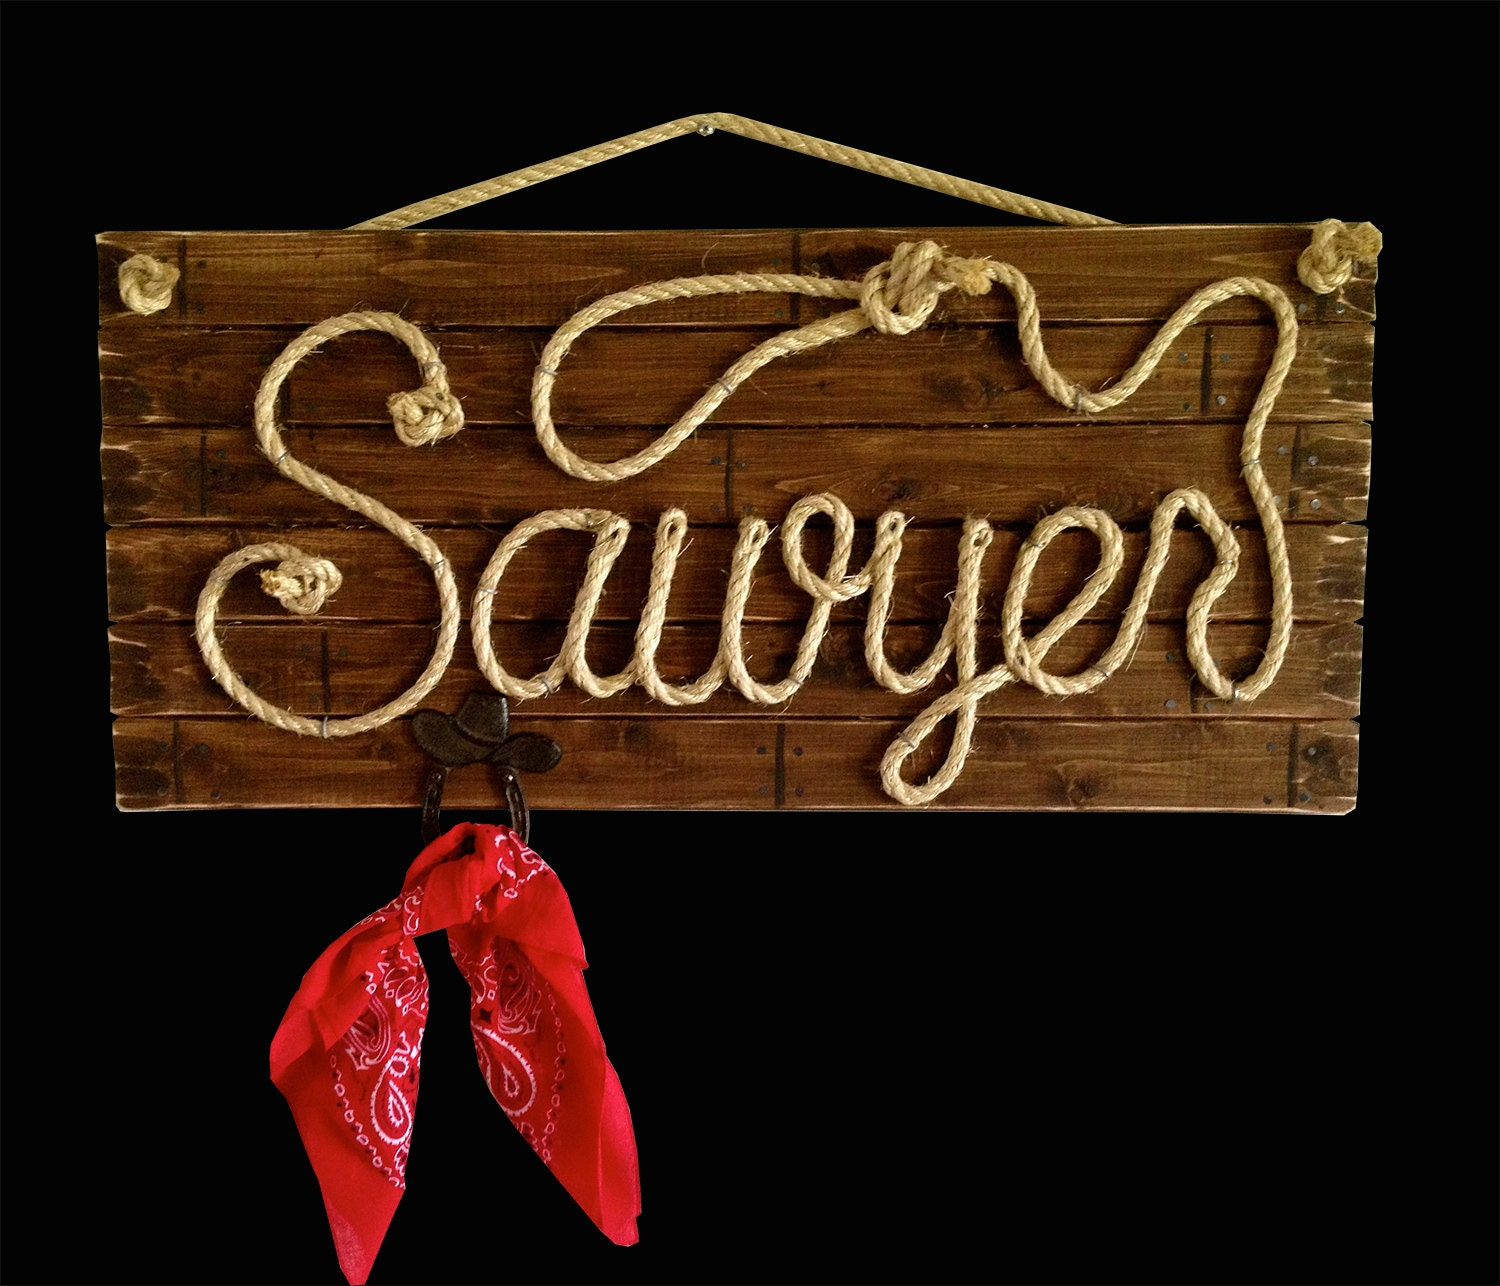 Sawyer 32 Western Rope Name Sign With Rope Hanger. Model Murals. Store Signs. Childrens Banners. Biker Stickers. Dating Signs Of Stroke. Condominium Signs. Dysmorphic Disorder Signs. Net Banners